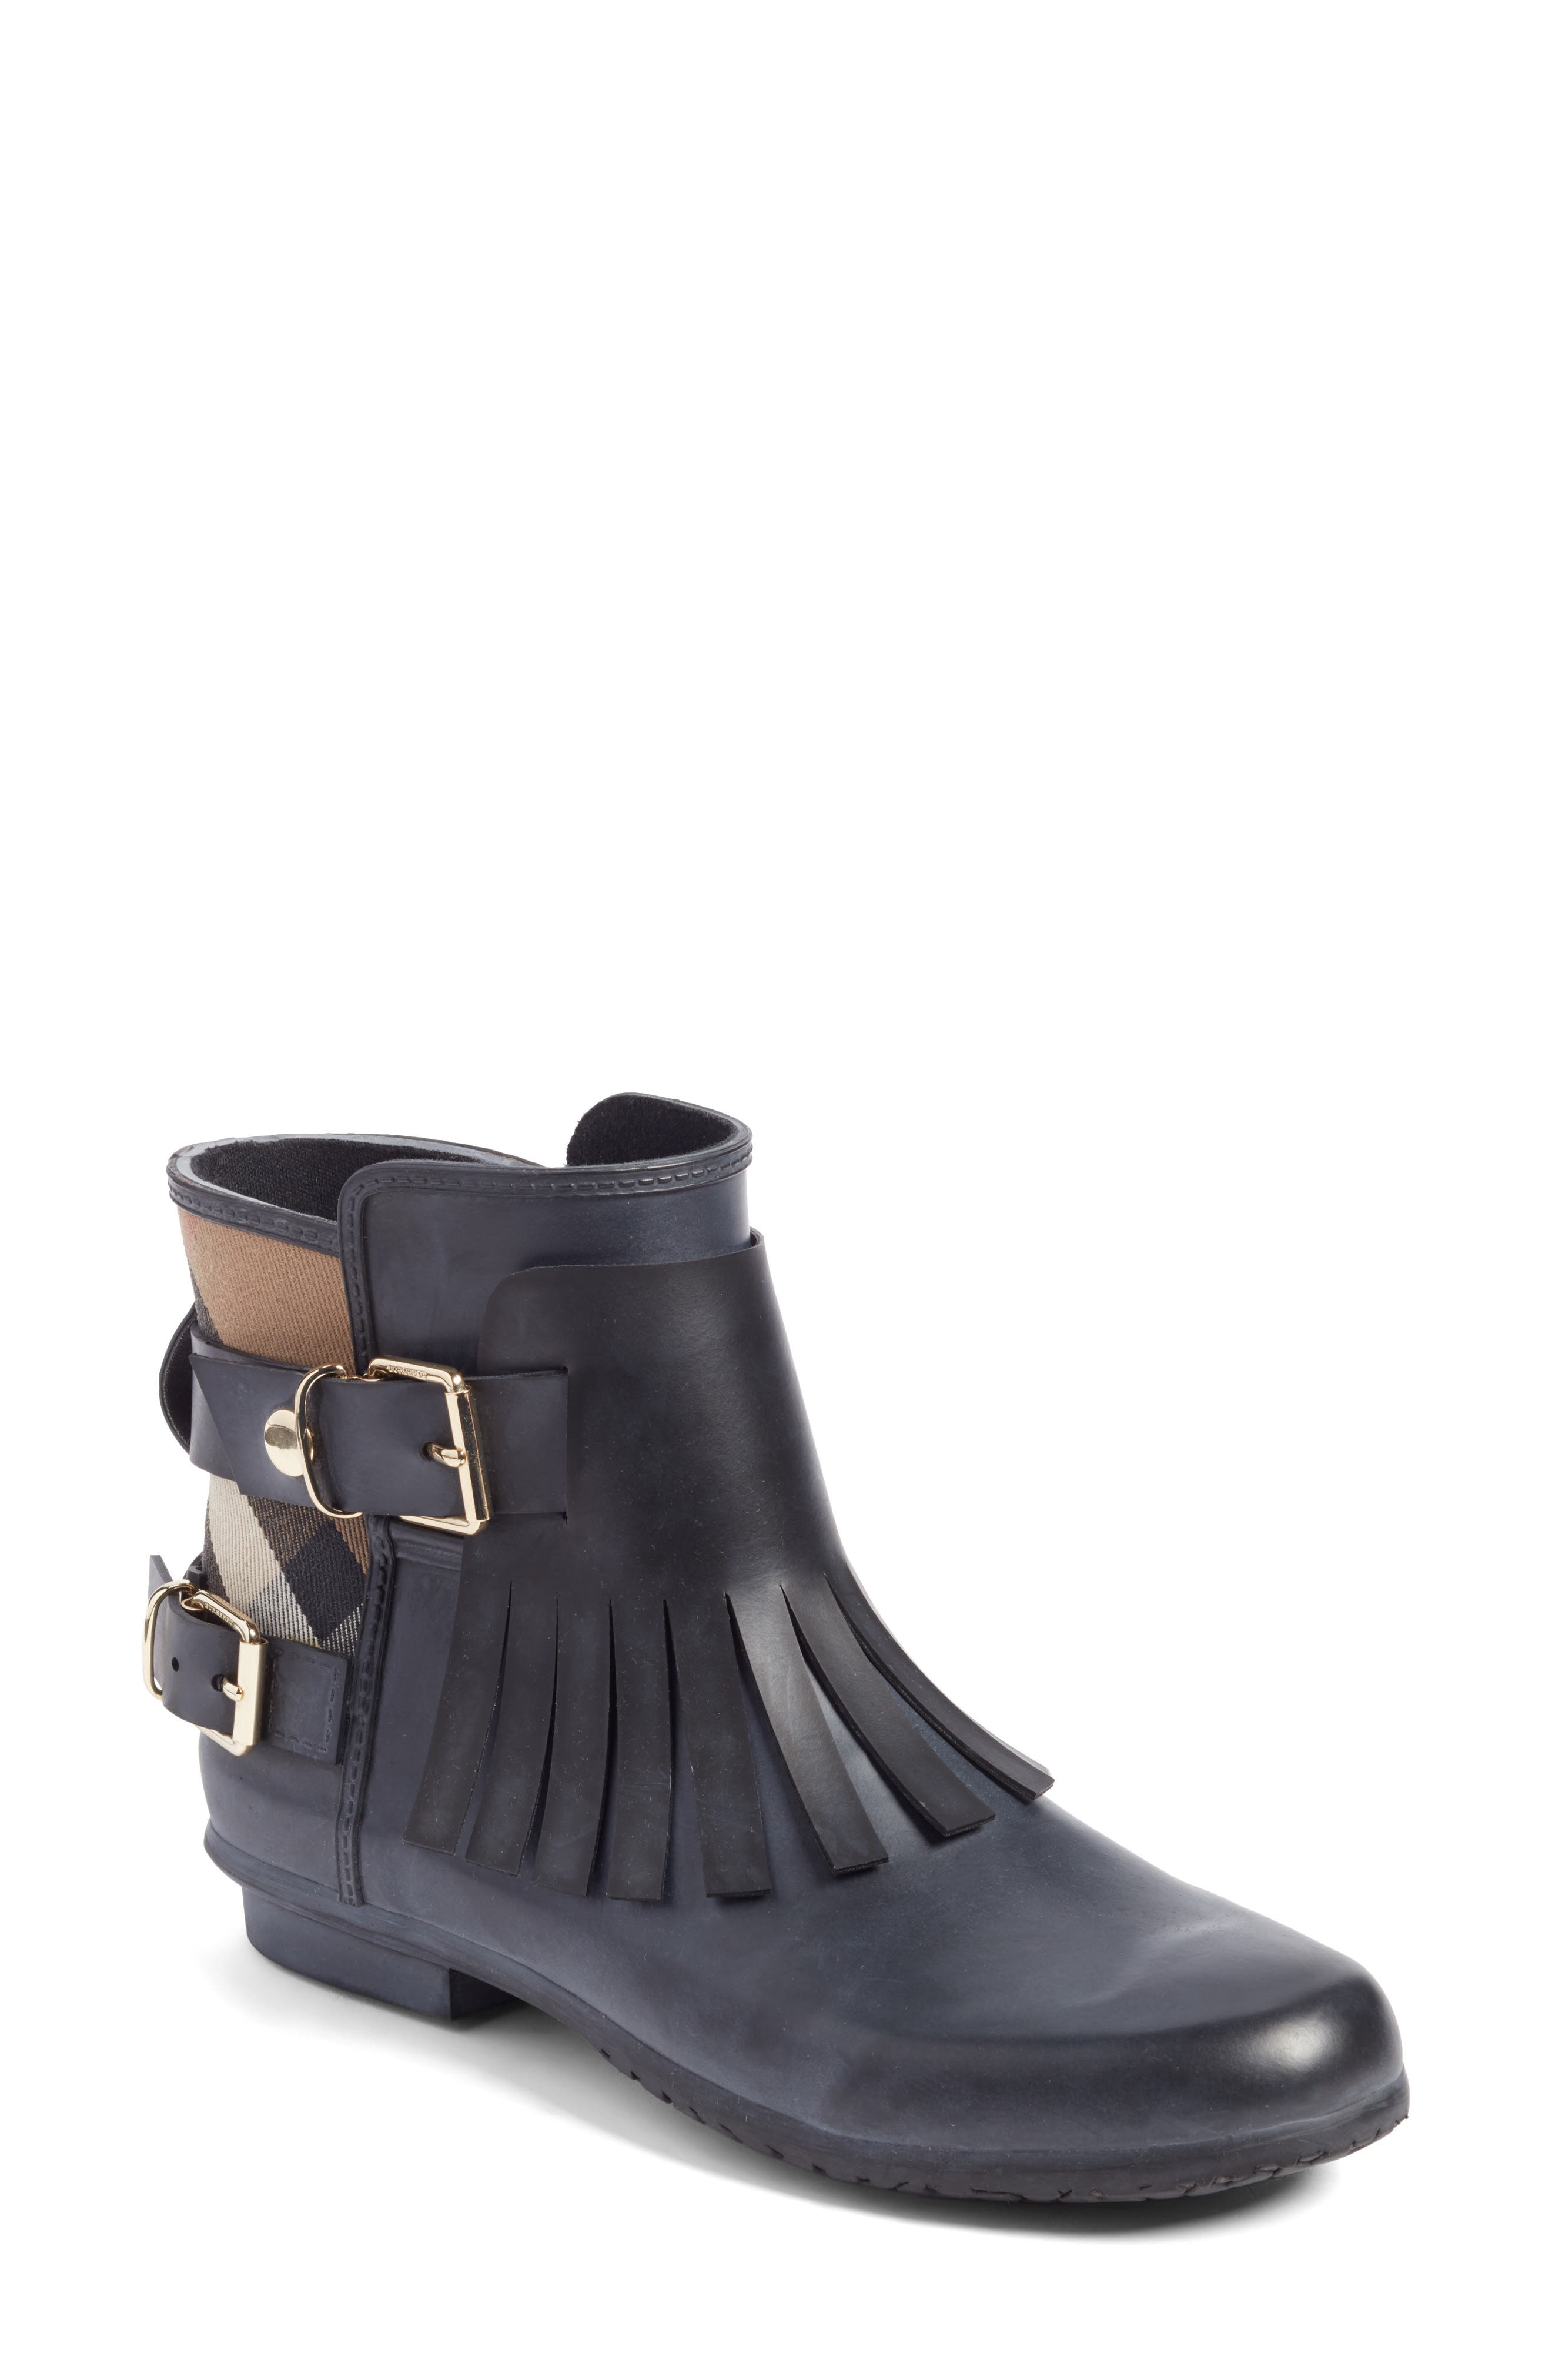 Main Image - Burberry Fringe Short Rain Bootie (Women)